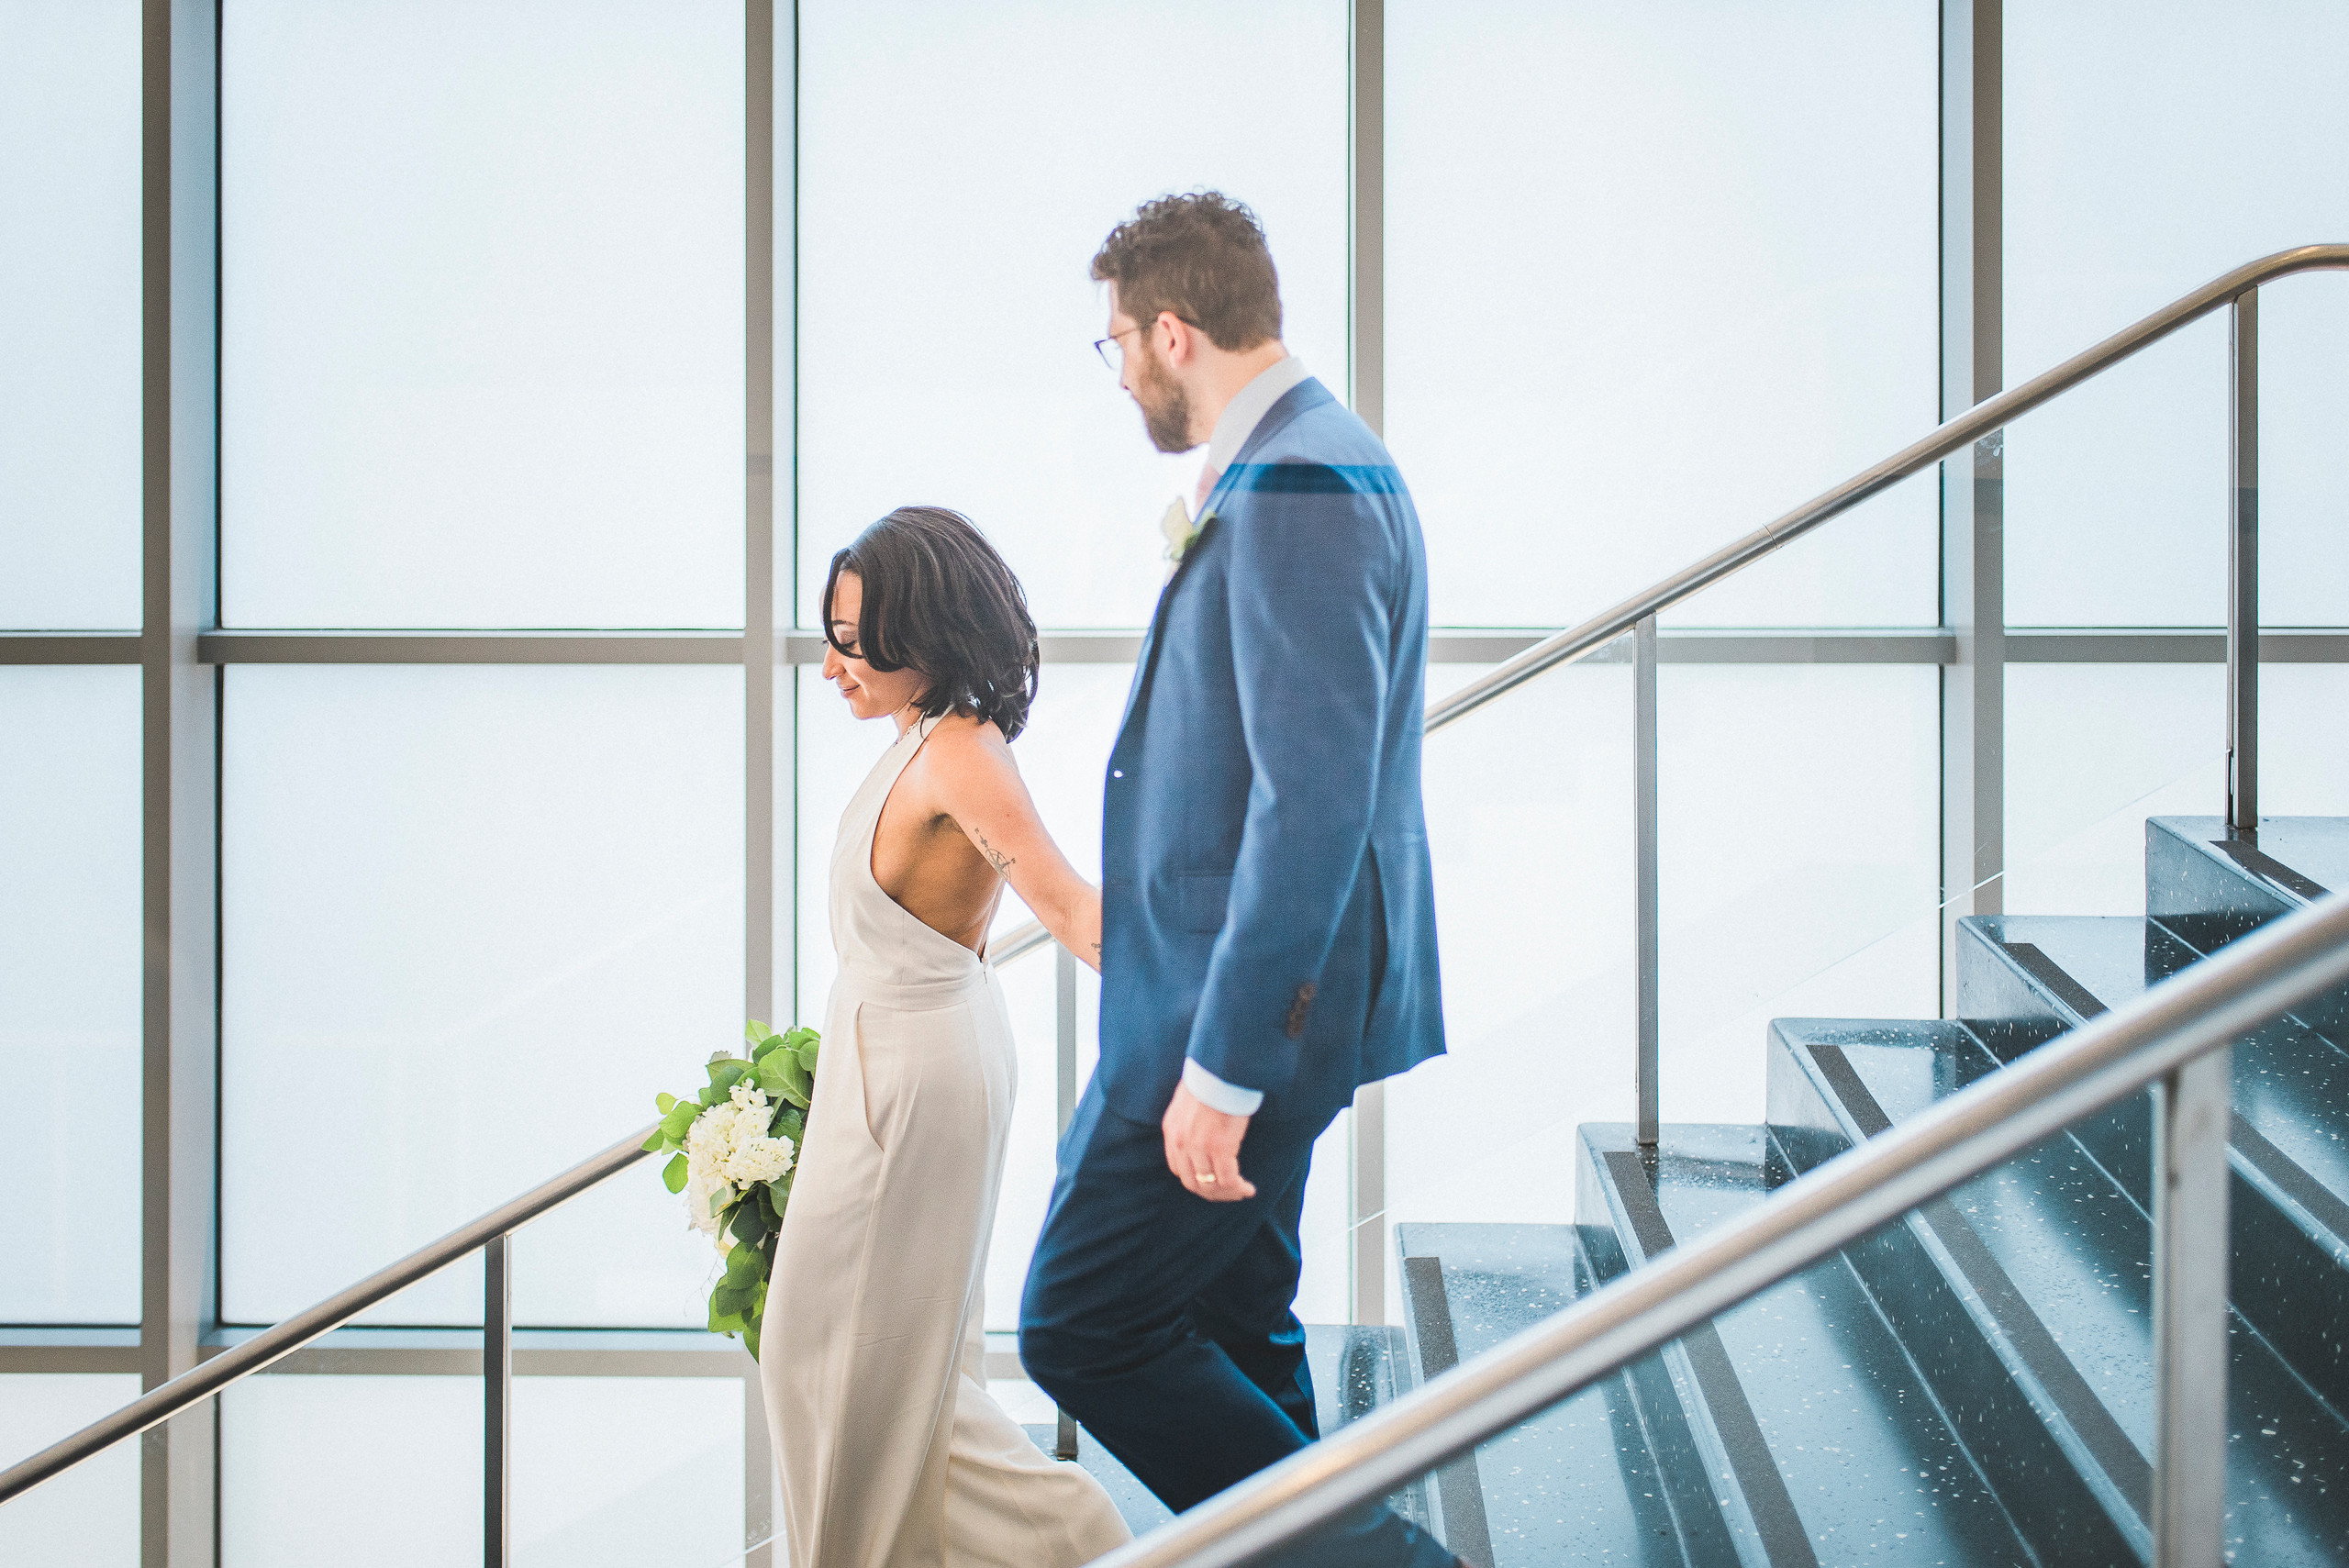 Bride and Groom on Stairs MoMA NYC wedding lines windows staircase